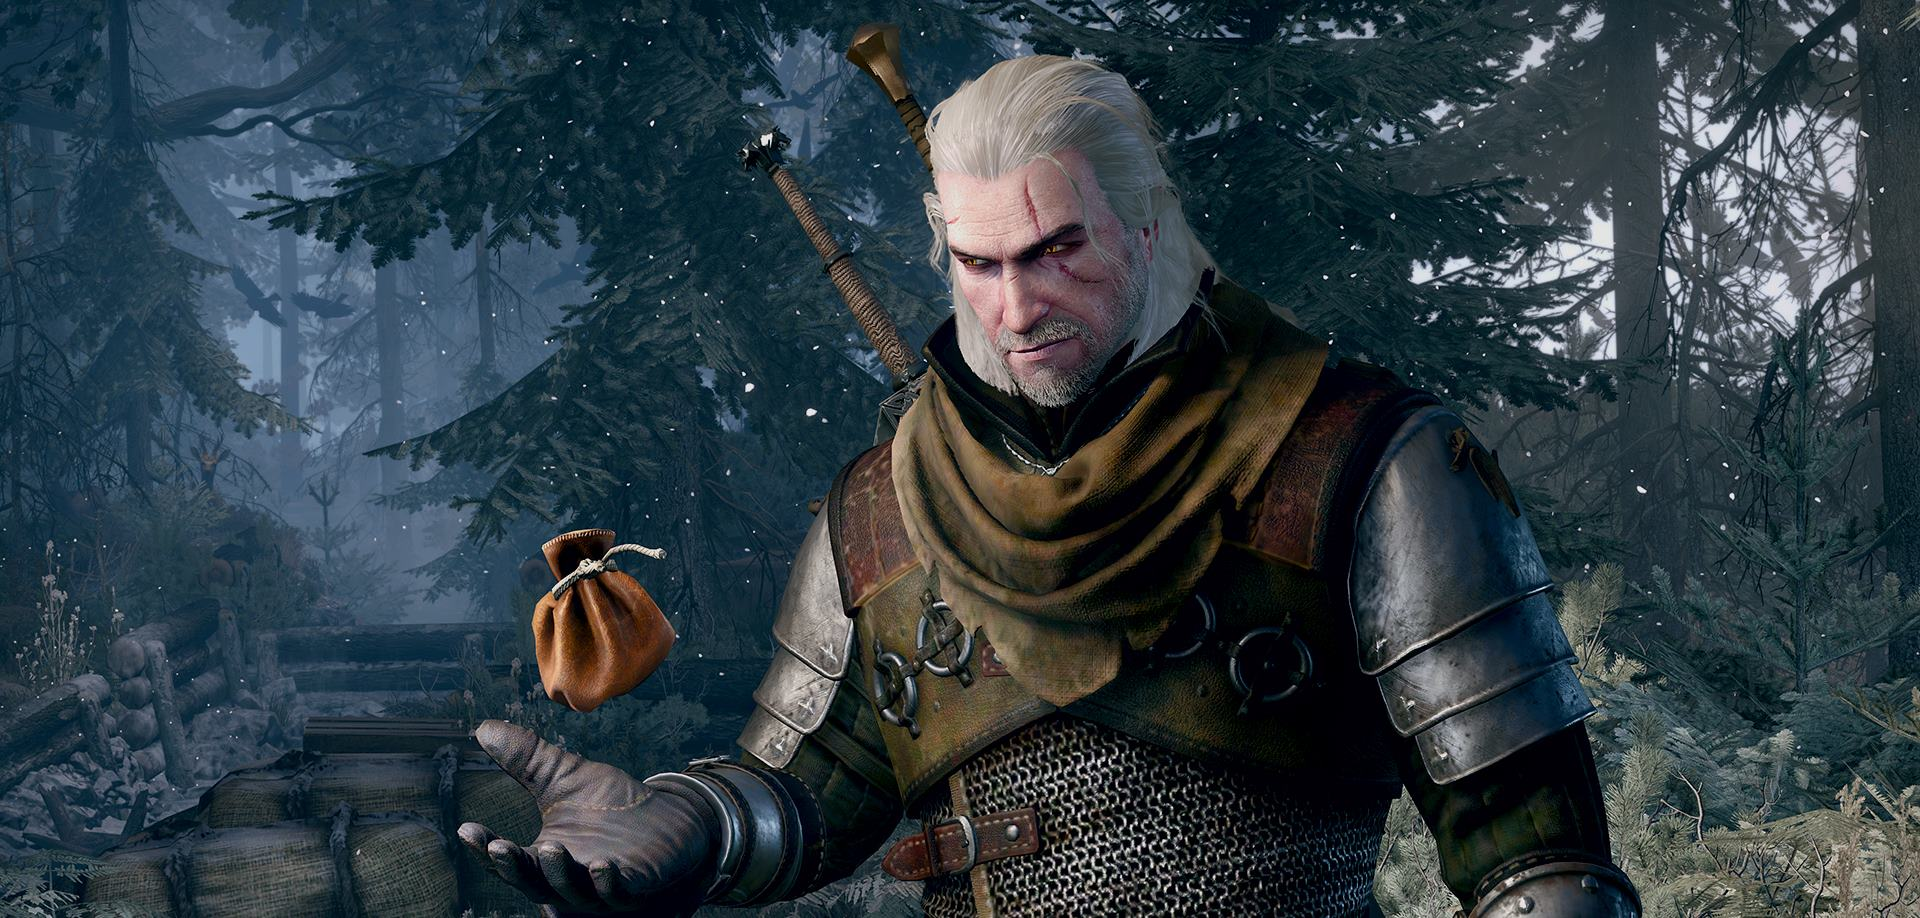 The Witcher 3's first three hours show off this sequel's changed attitude